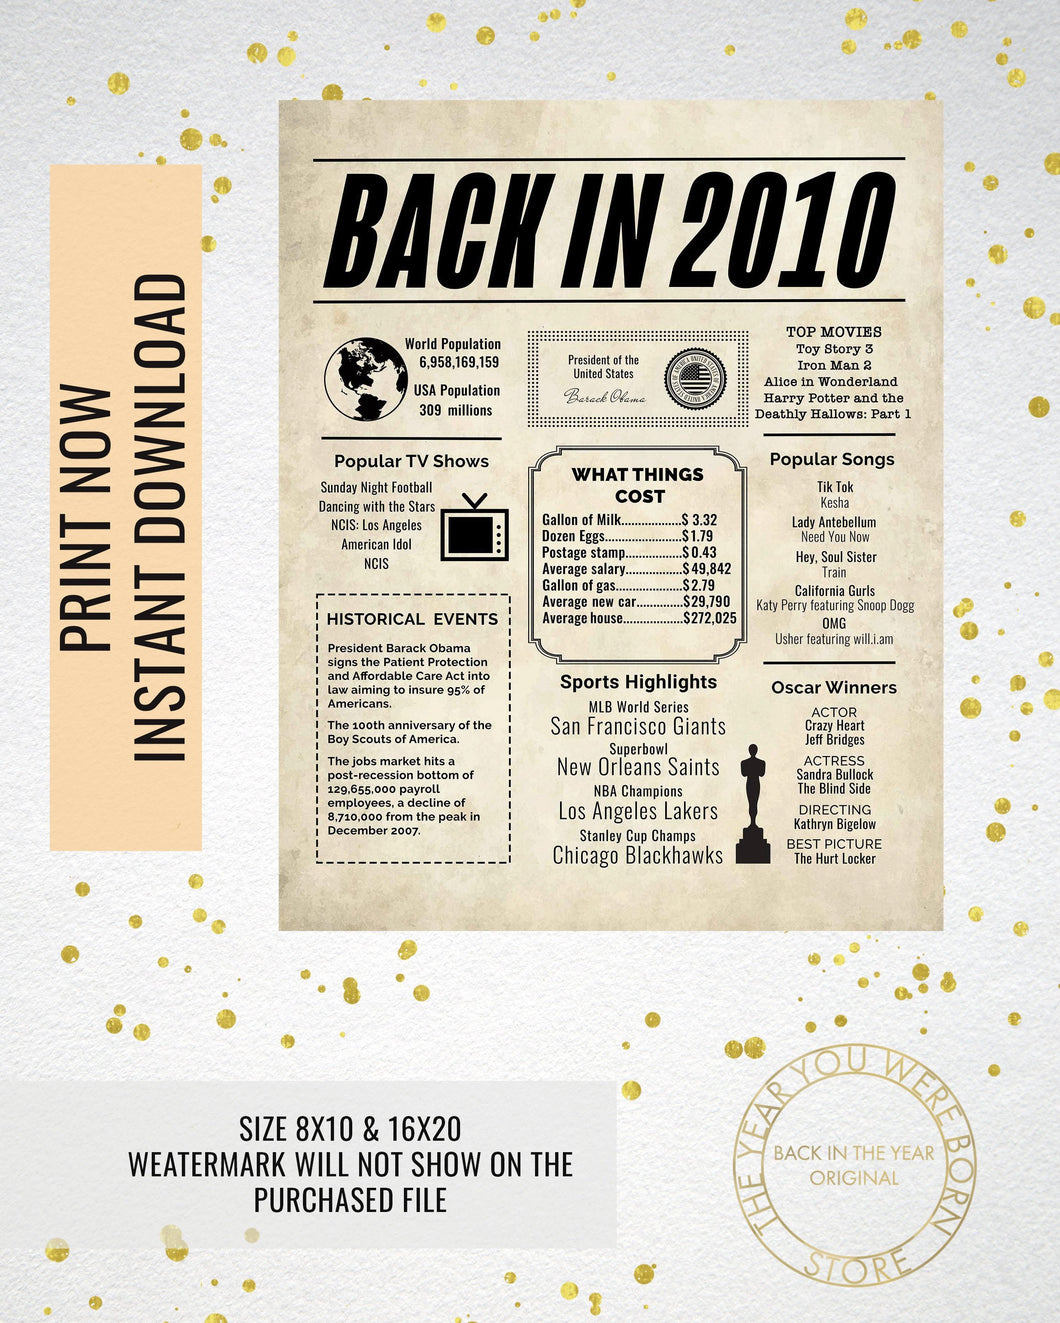 picture relating to Printable Locker Signs referred to as 2010 Newspaper Poster, Birthday Poster Printable, Year Capsule 2010, The Calendar year 2010 Quick Down load, 2010 poster poster indicator